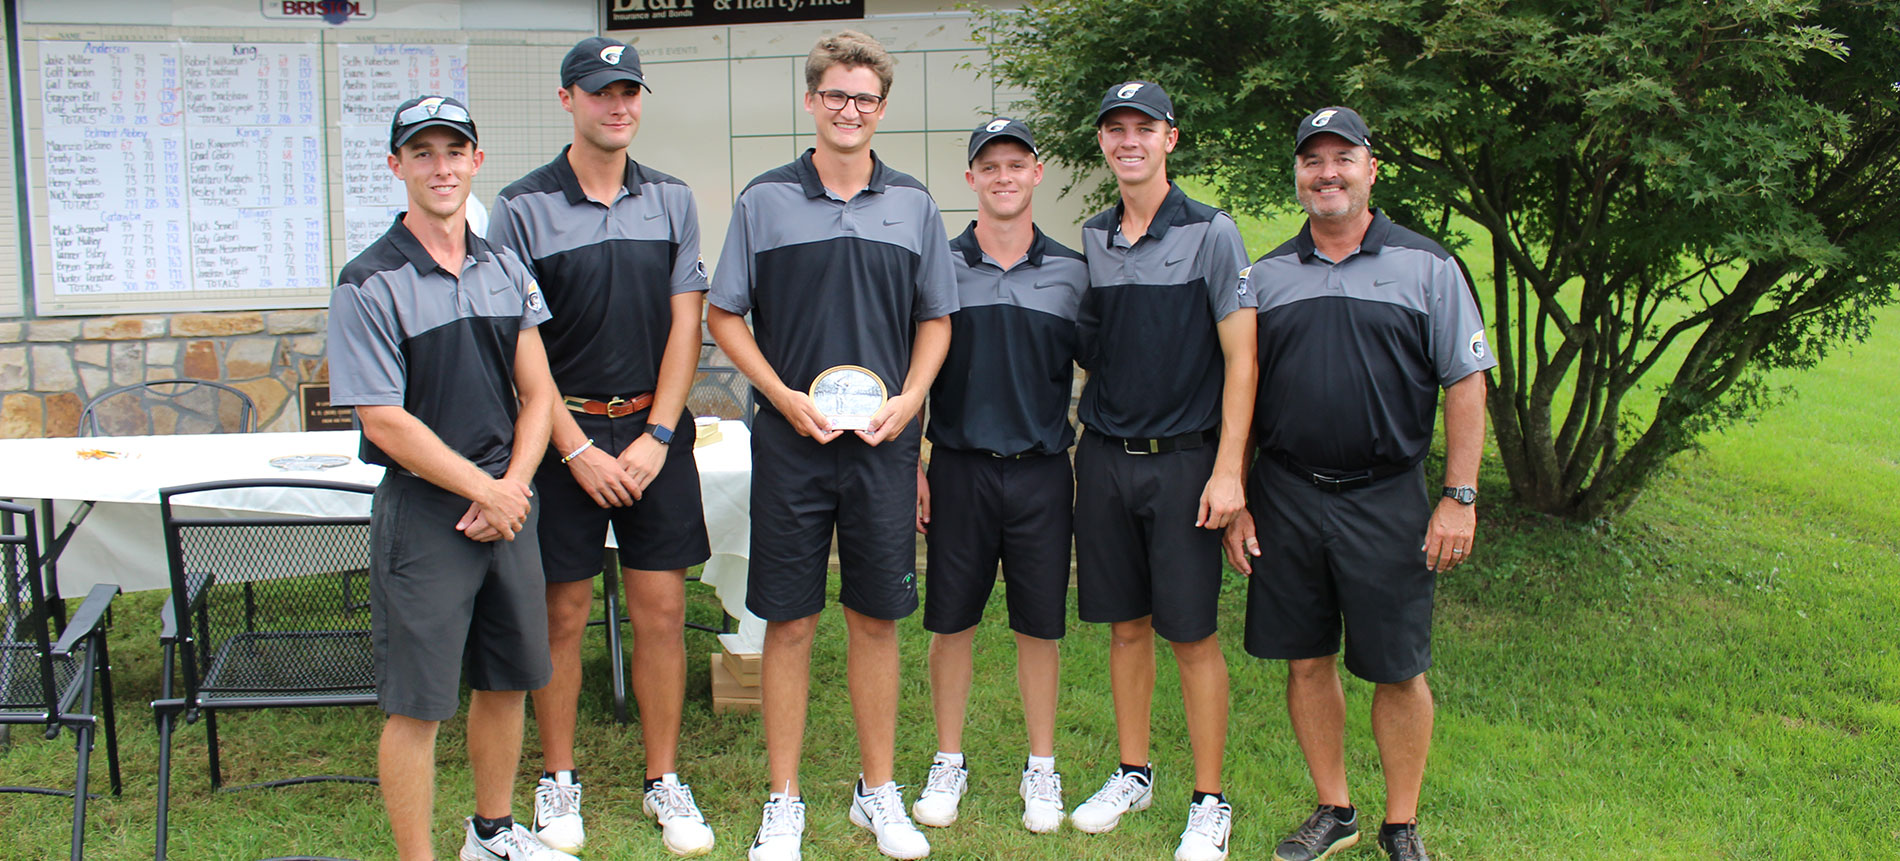 Bell Wins King Invitational; Trojans Finish Second